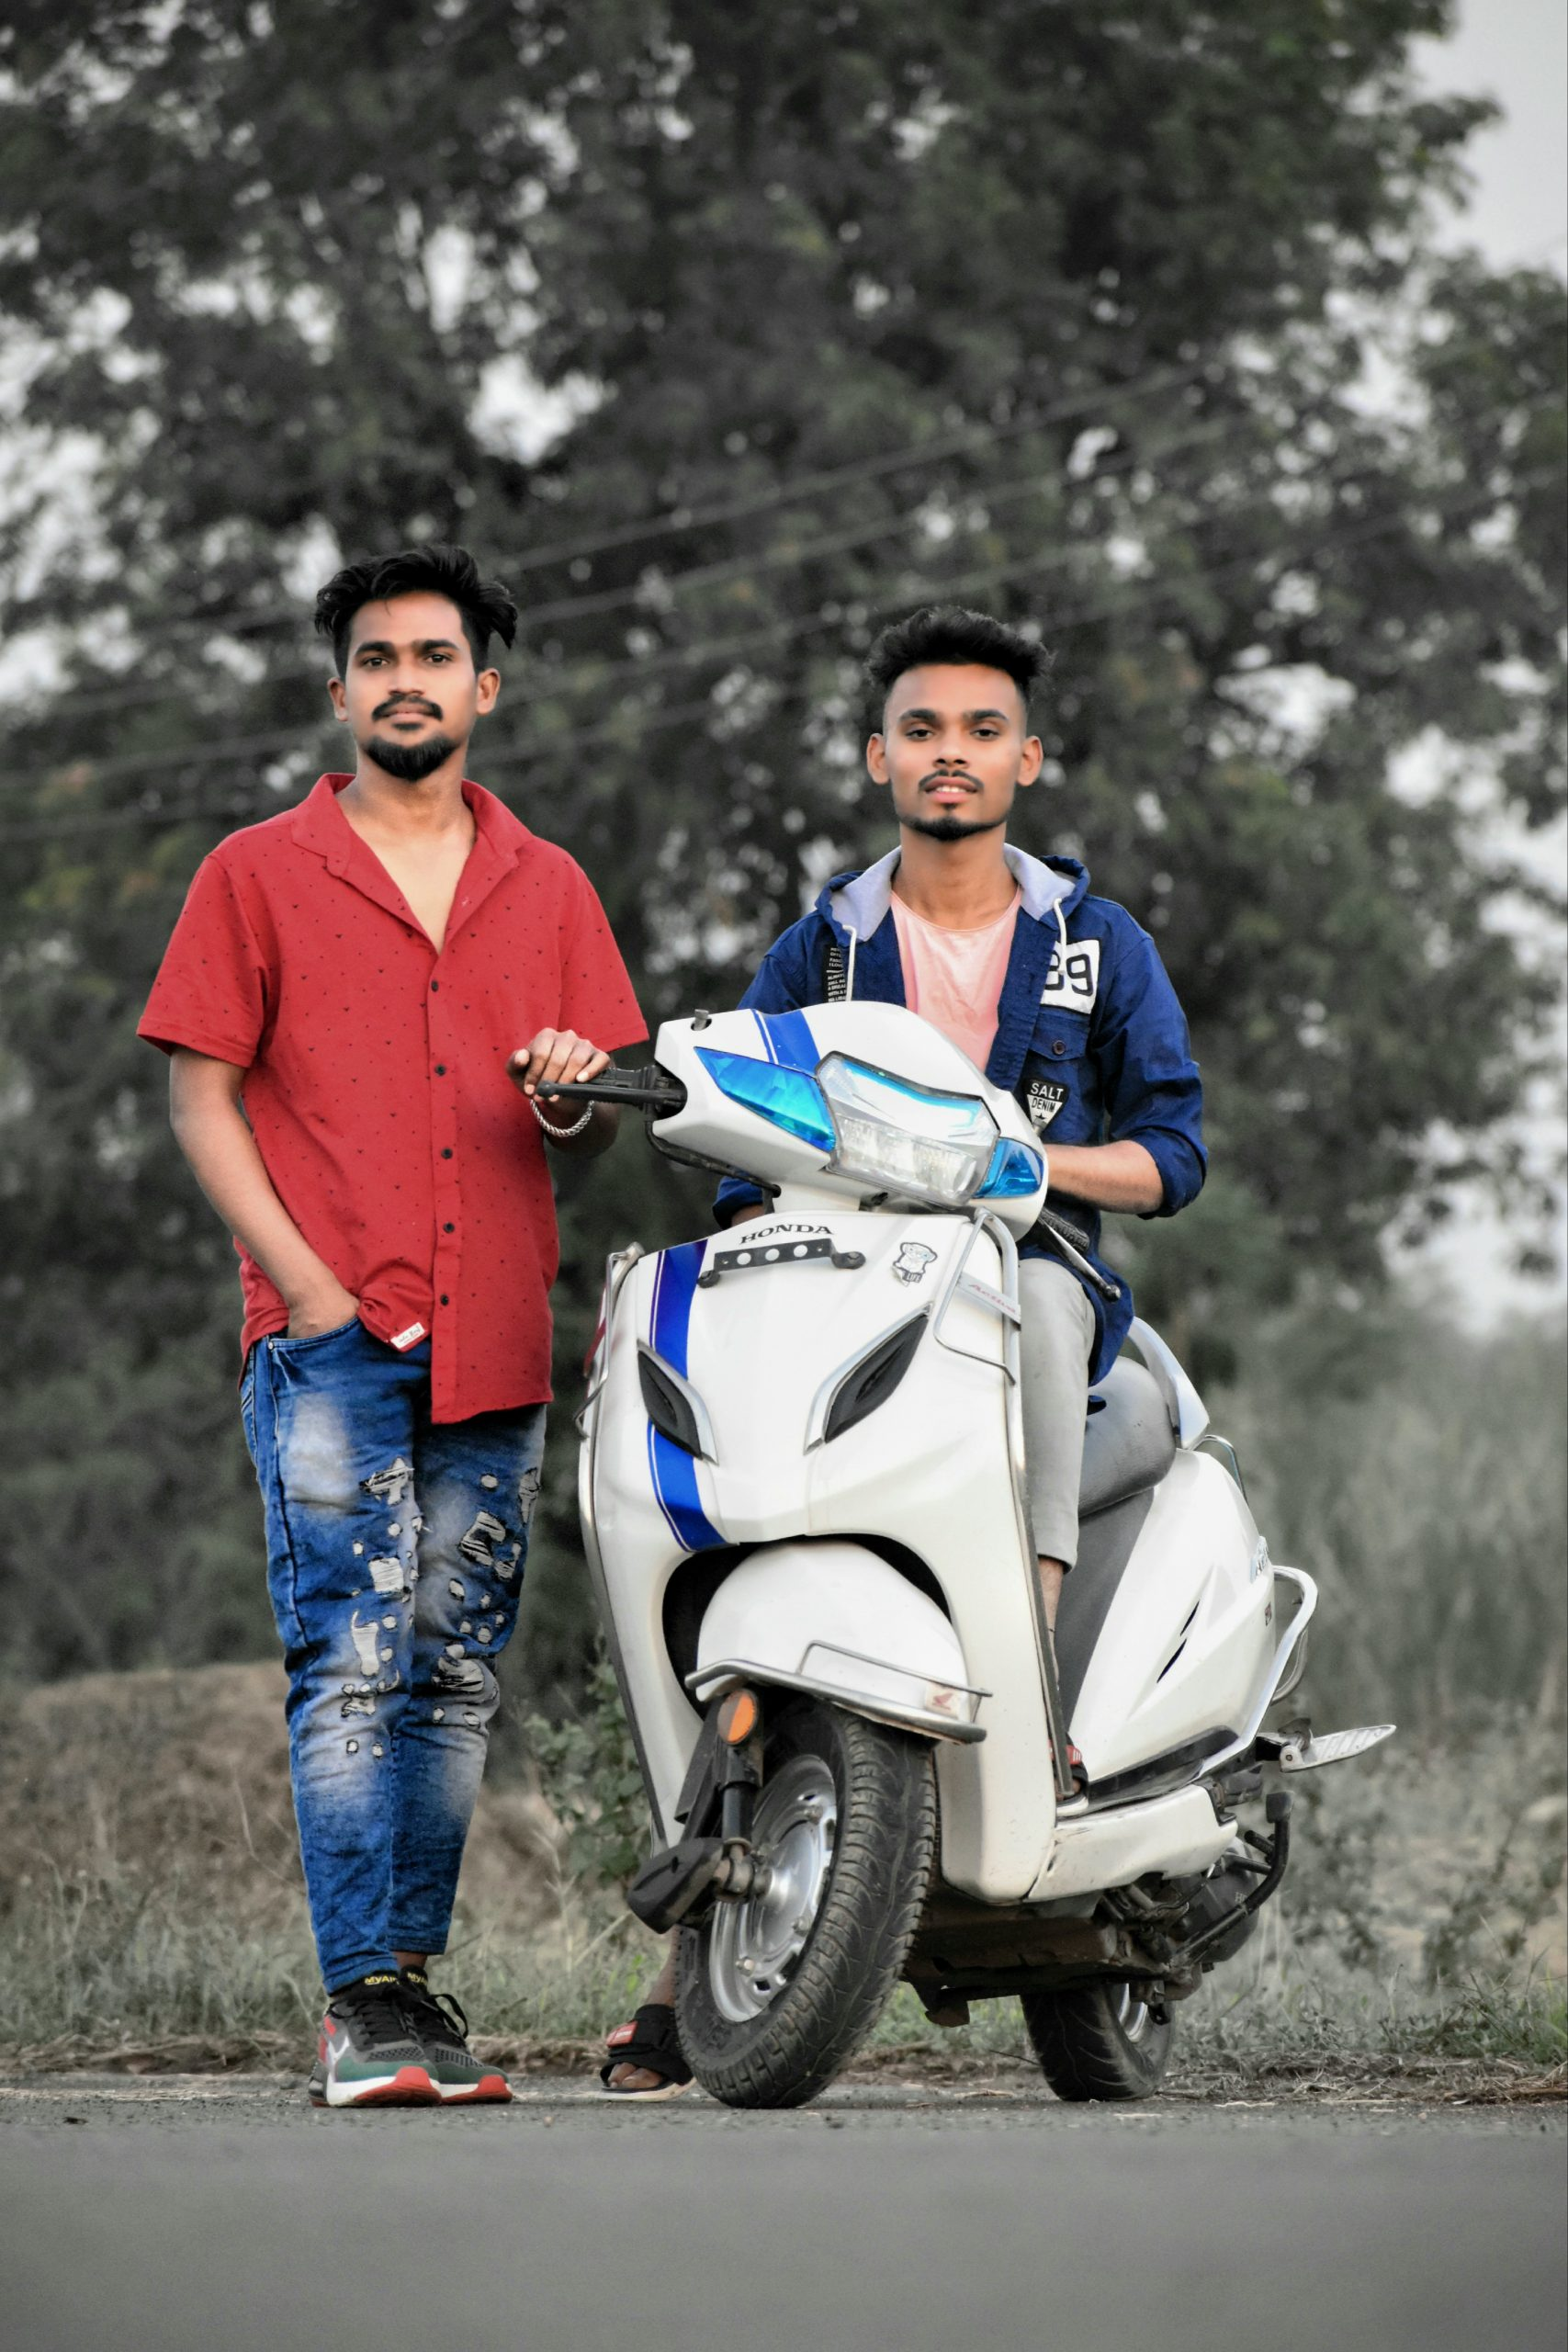 Boys posing on scooty